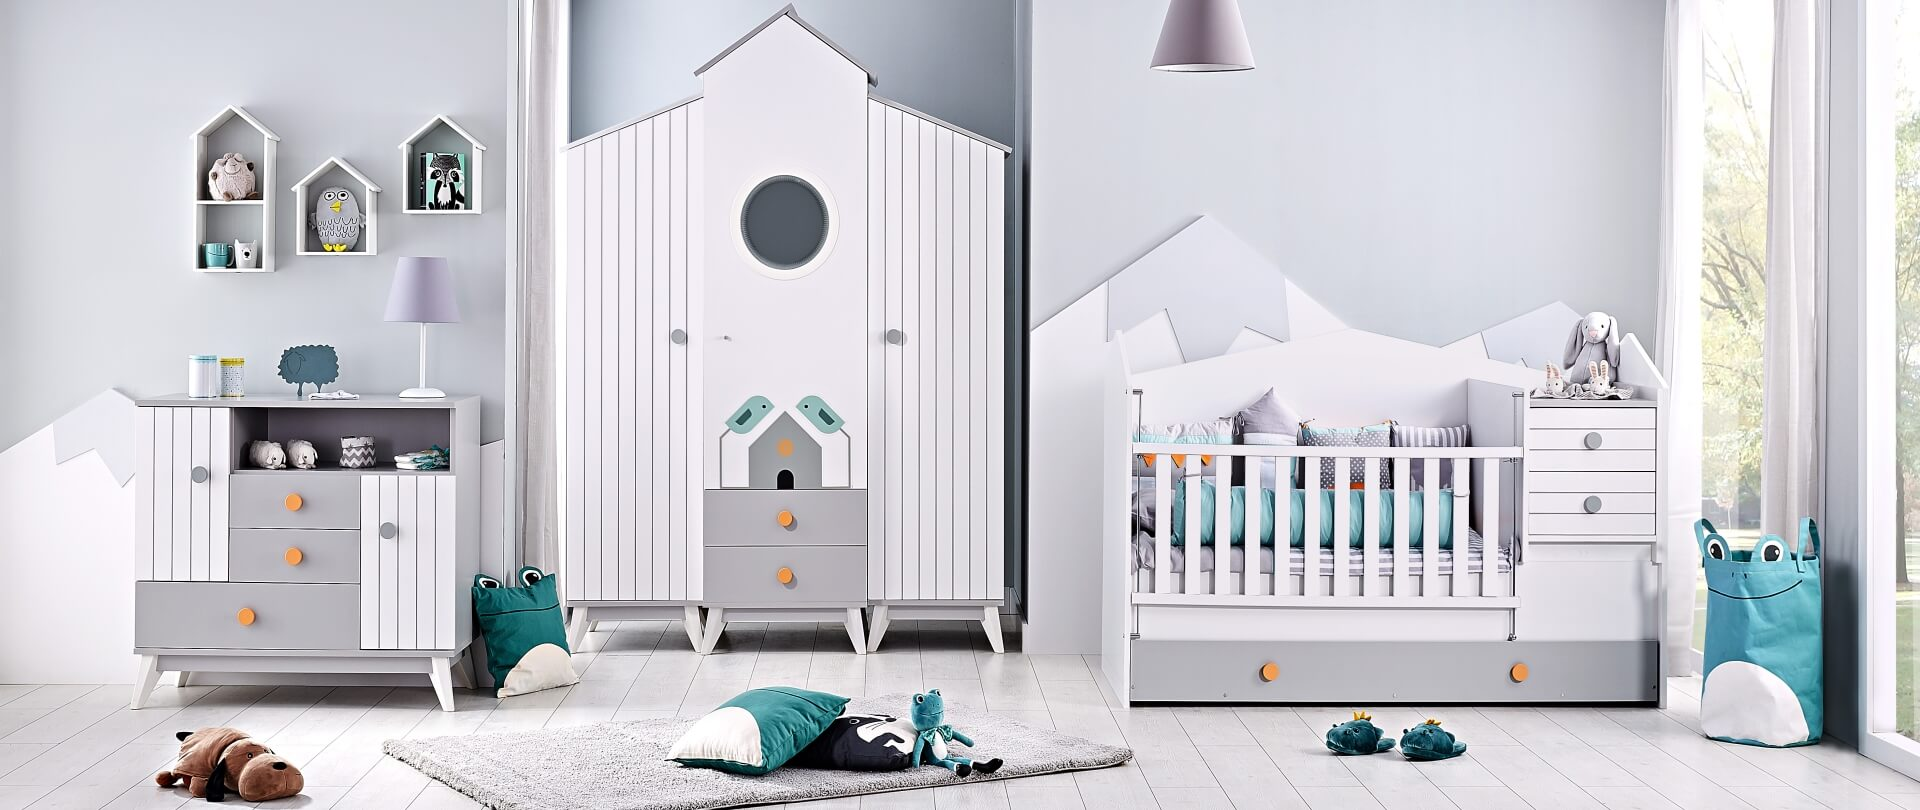 Bebe-Stars-Bird-House-slider